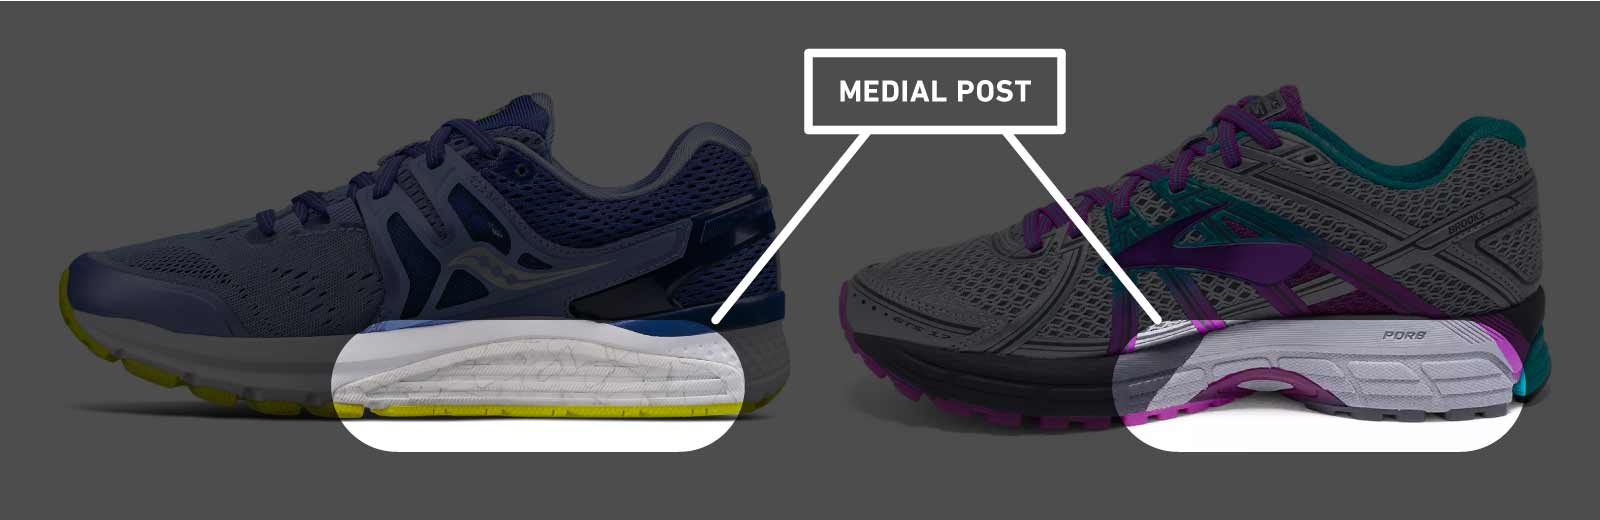 Running shoe medial post